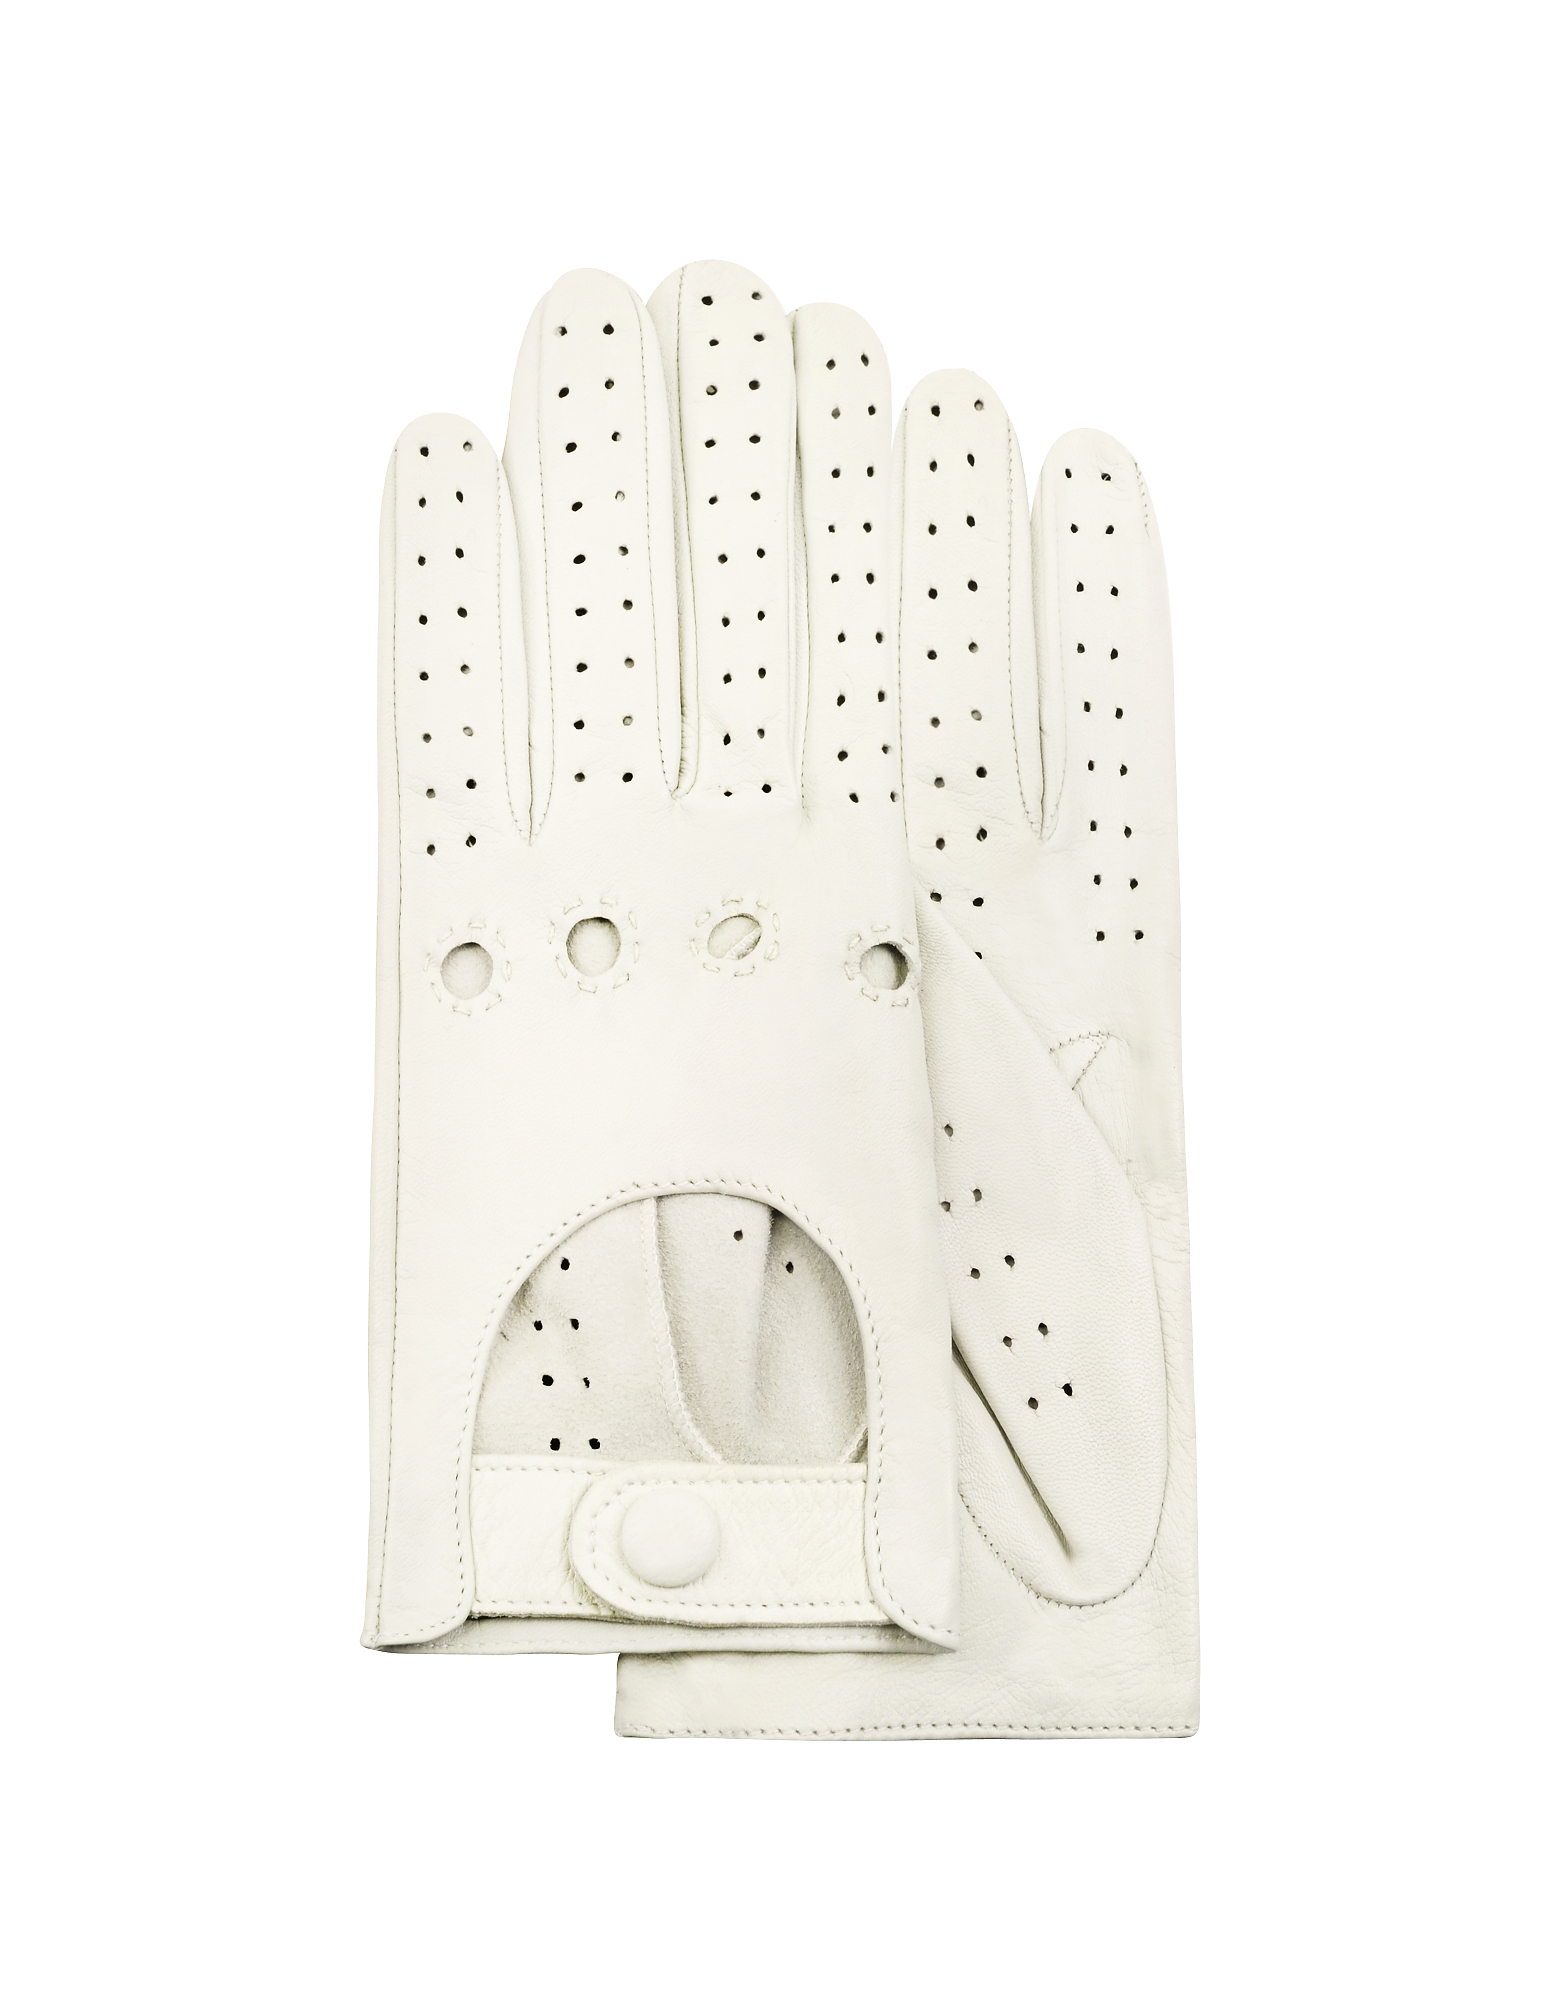 Forzieri Designer Women's Gloves, Women's Perforated Italian Leather Driving Gloves